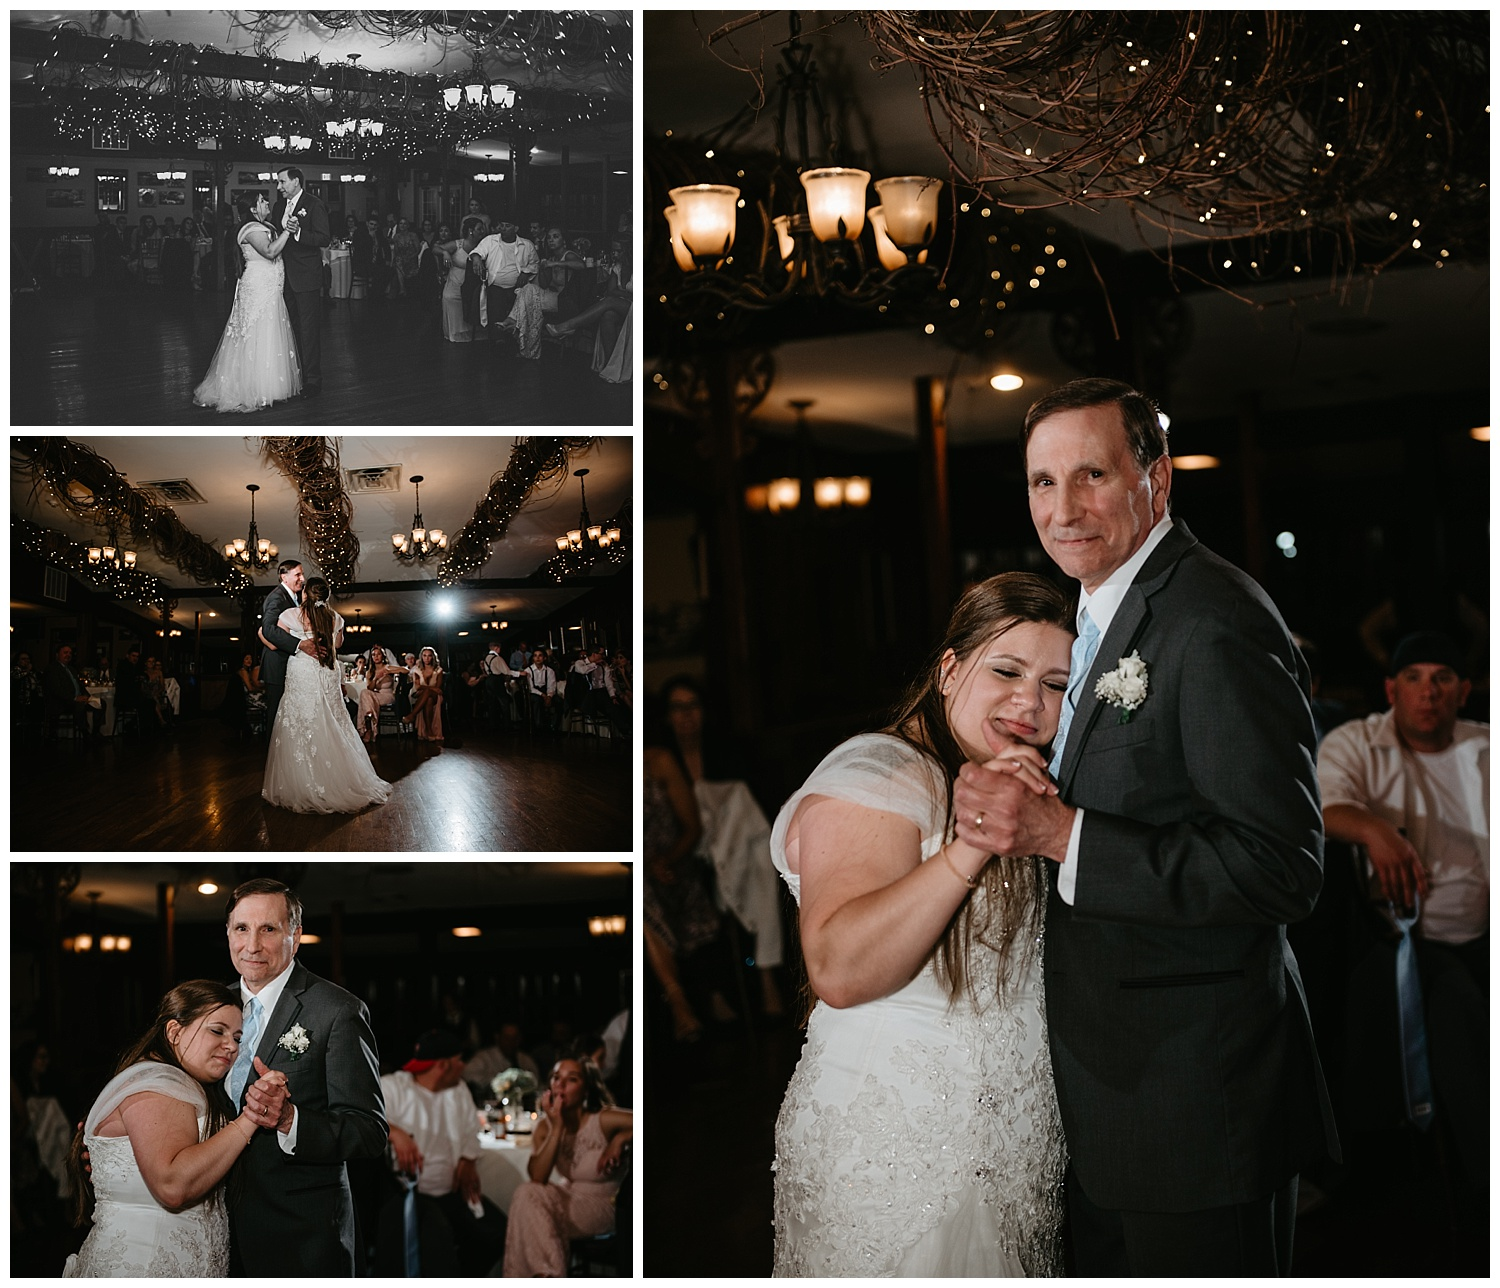 NEPA-wedding-photographer-at-the-Stroudsmoor-Country-Inn-Stroudsburg-PA_0037.jpg